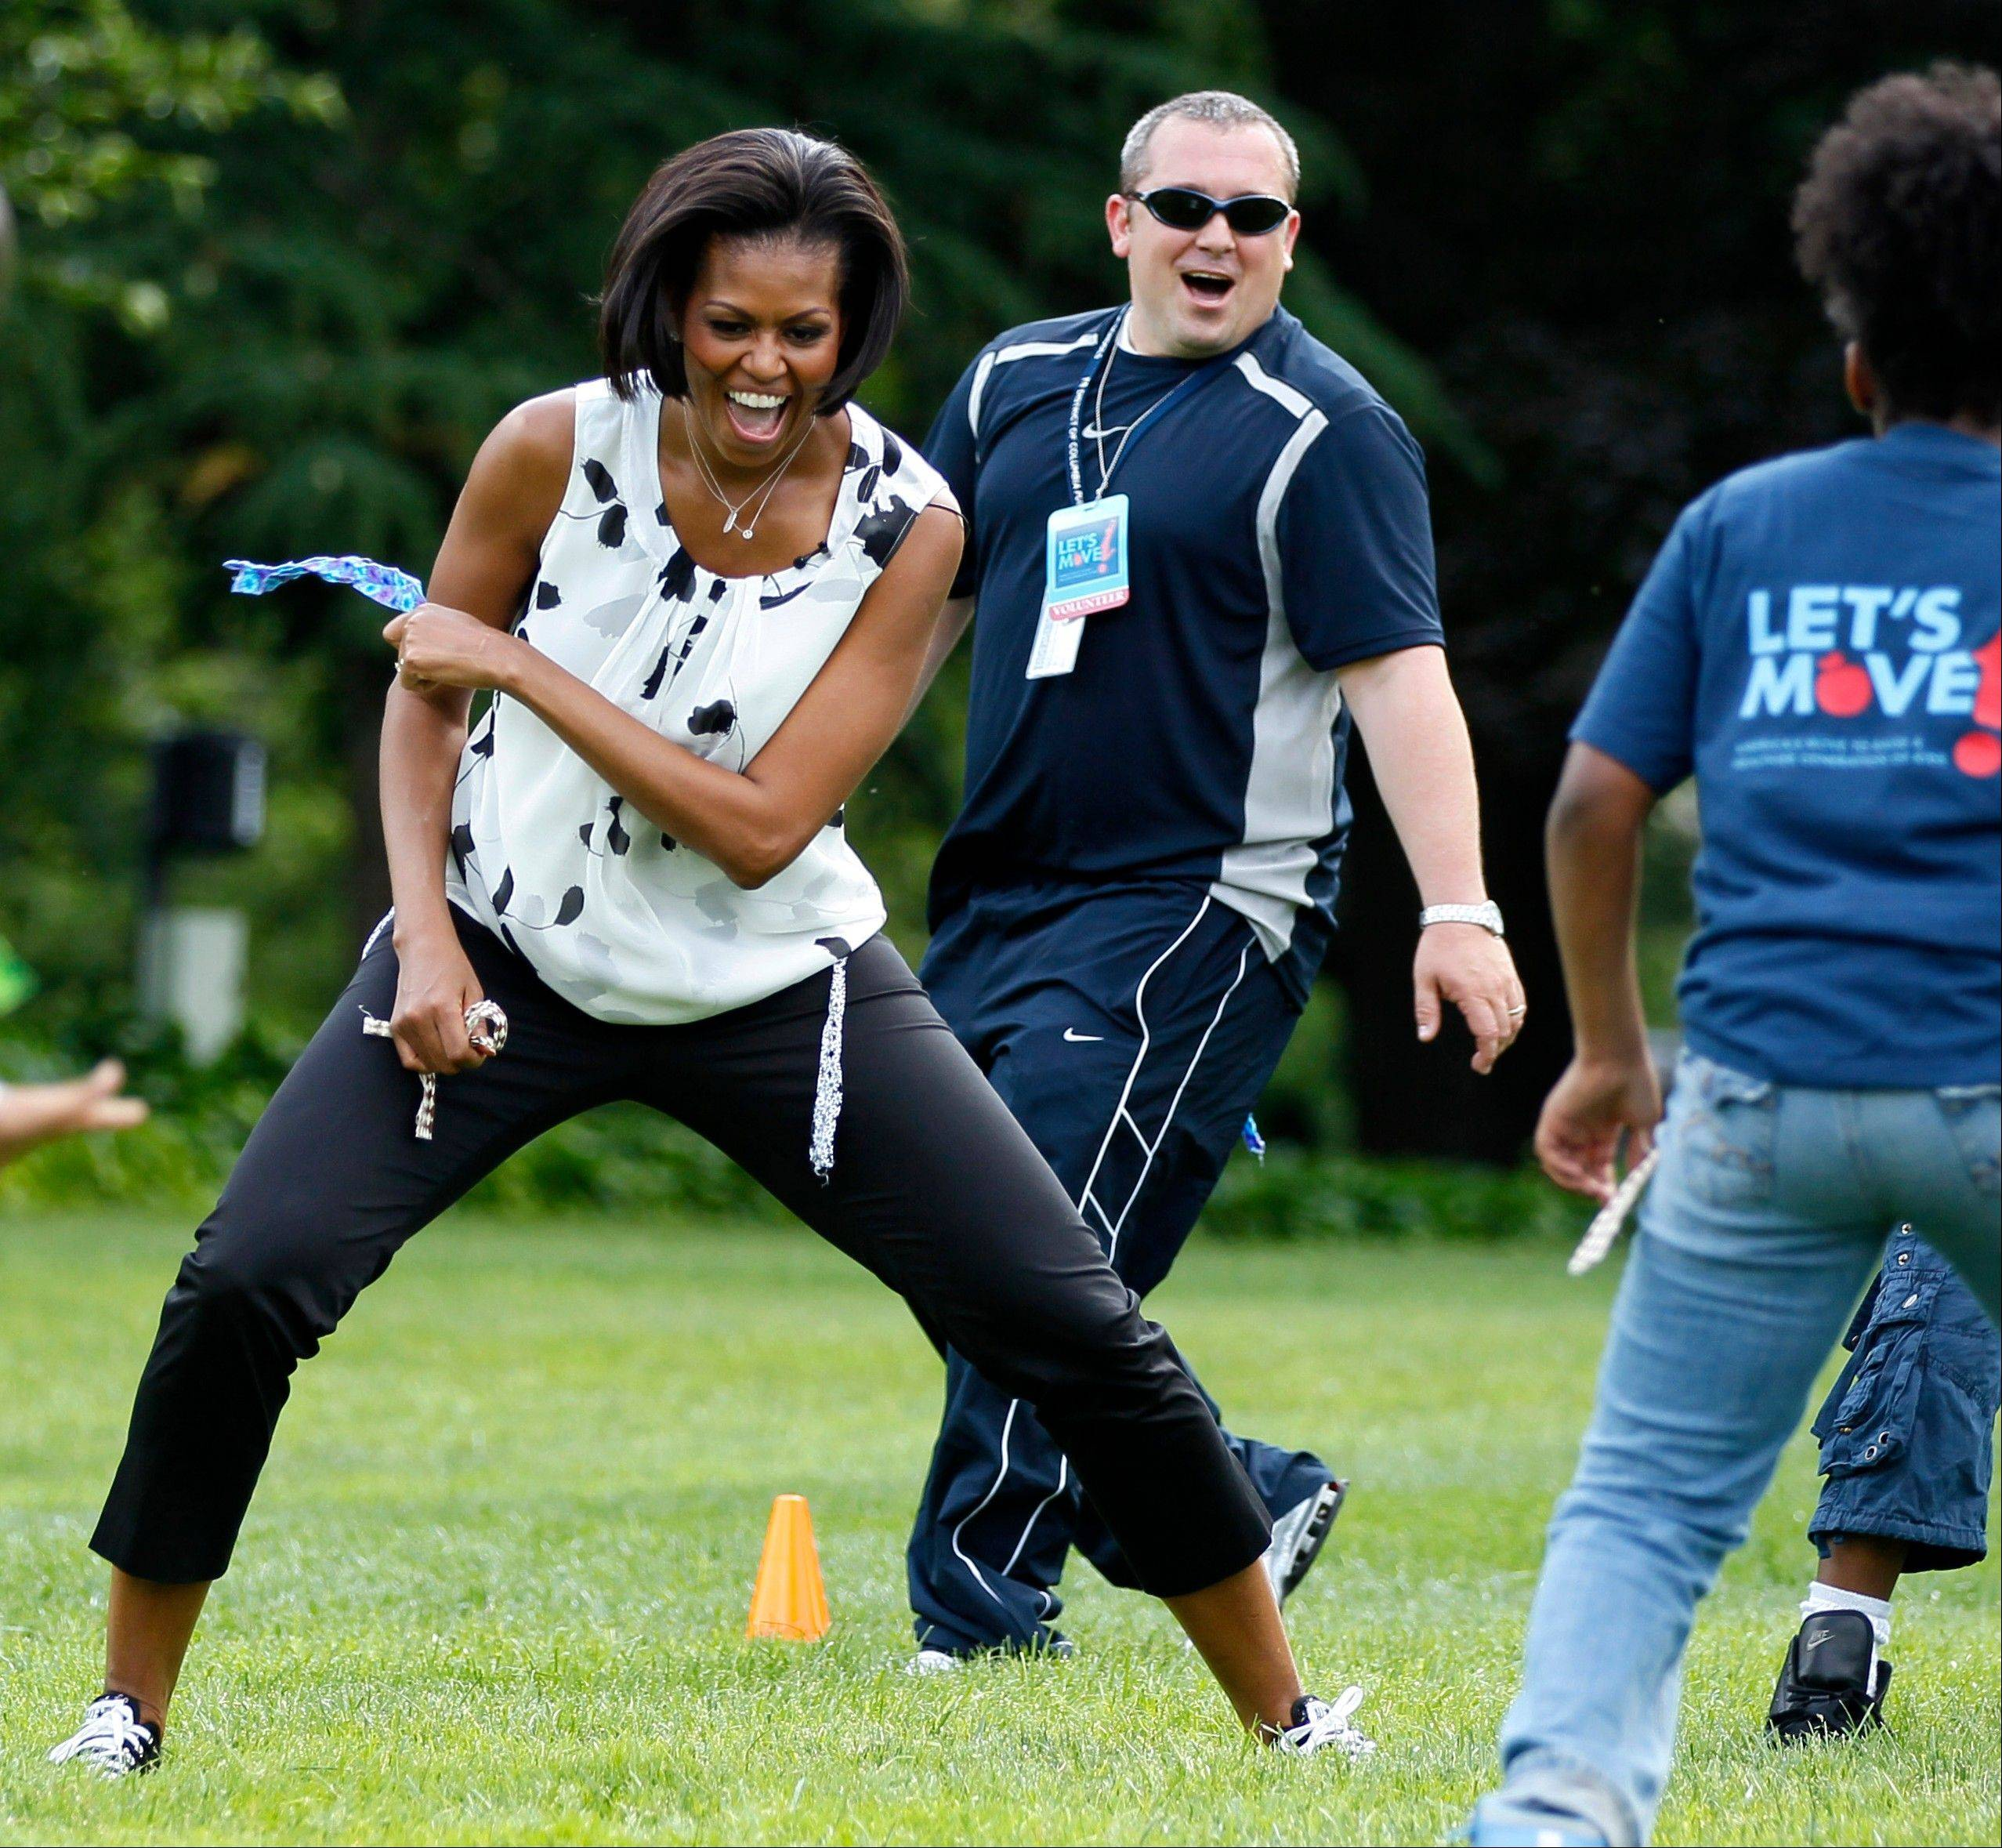 In this May 25, 2010, file photo first lady Michelle Obama plays with kids at an event on the South Lawn of the White House, in Washington. She is 5-foot-11, and she is world-famous. Sometimes she inspires awe in her admirers. She has been accused of being the angry type. So when Michelle Obama meets people, she likes to bring things down to earth with a hug.